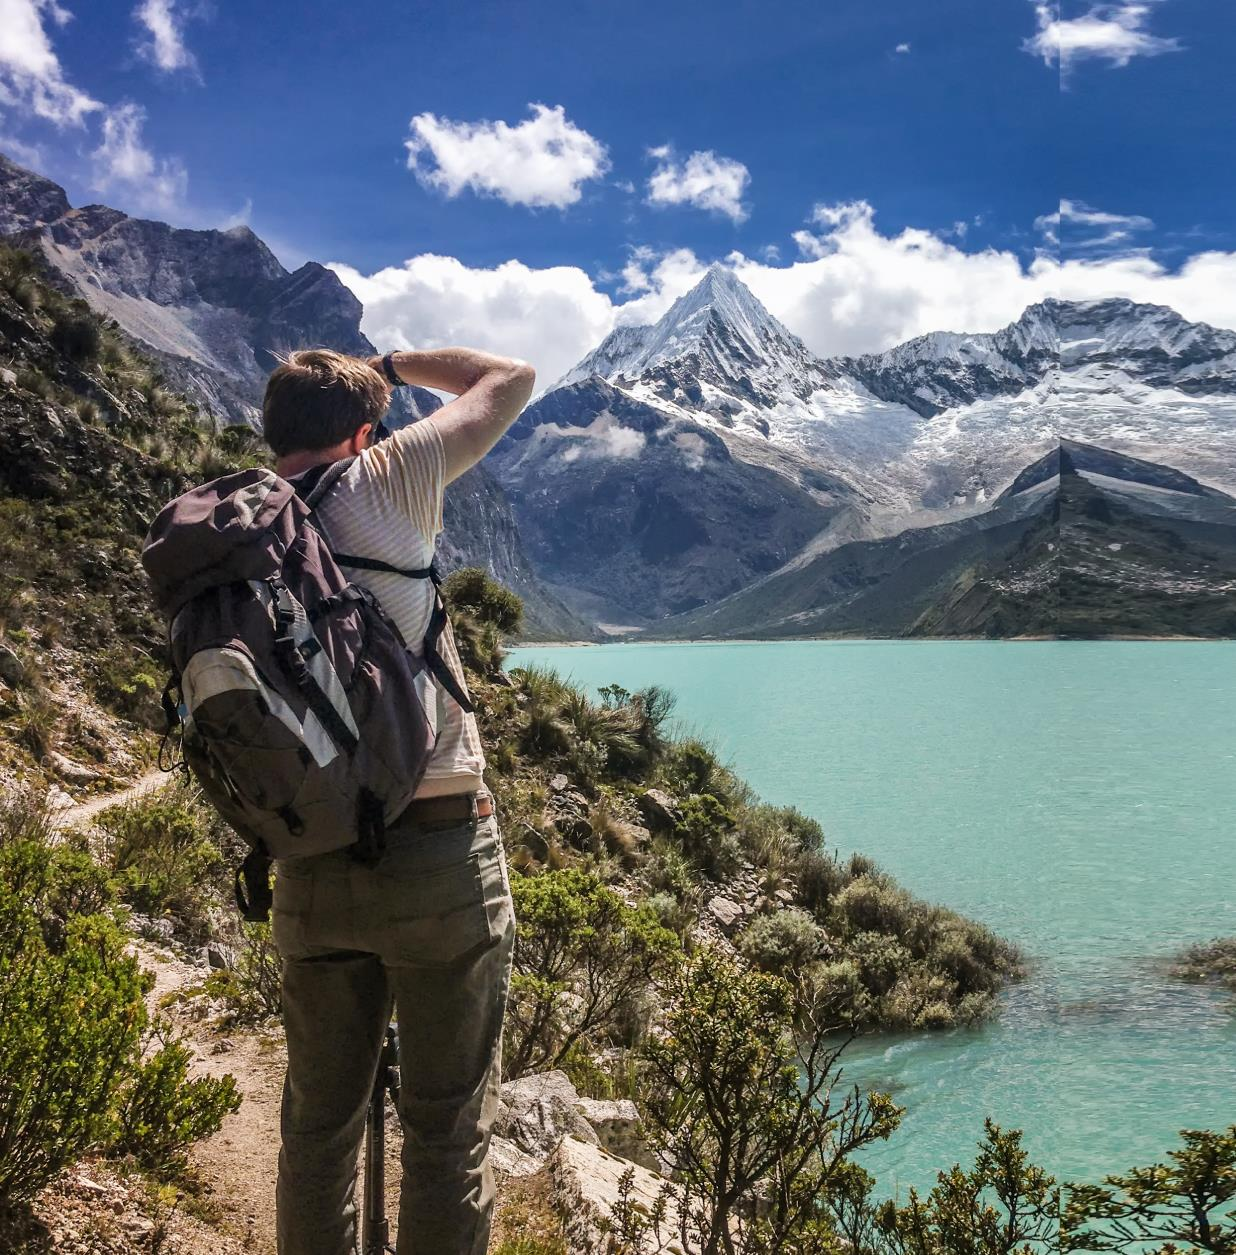 Best Destinations for Backpackers in Peru